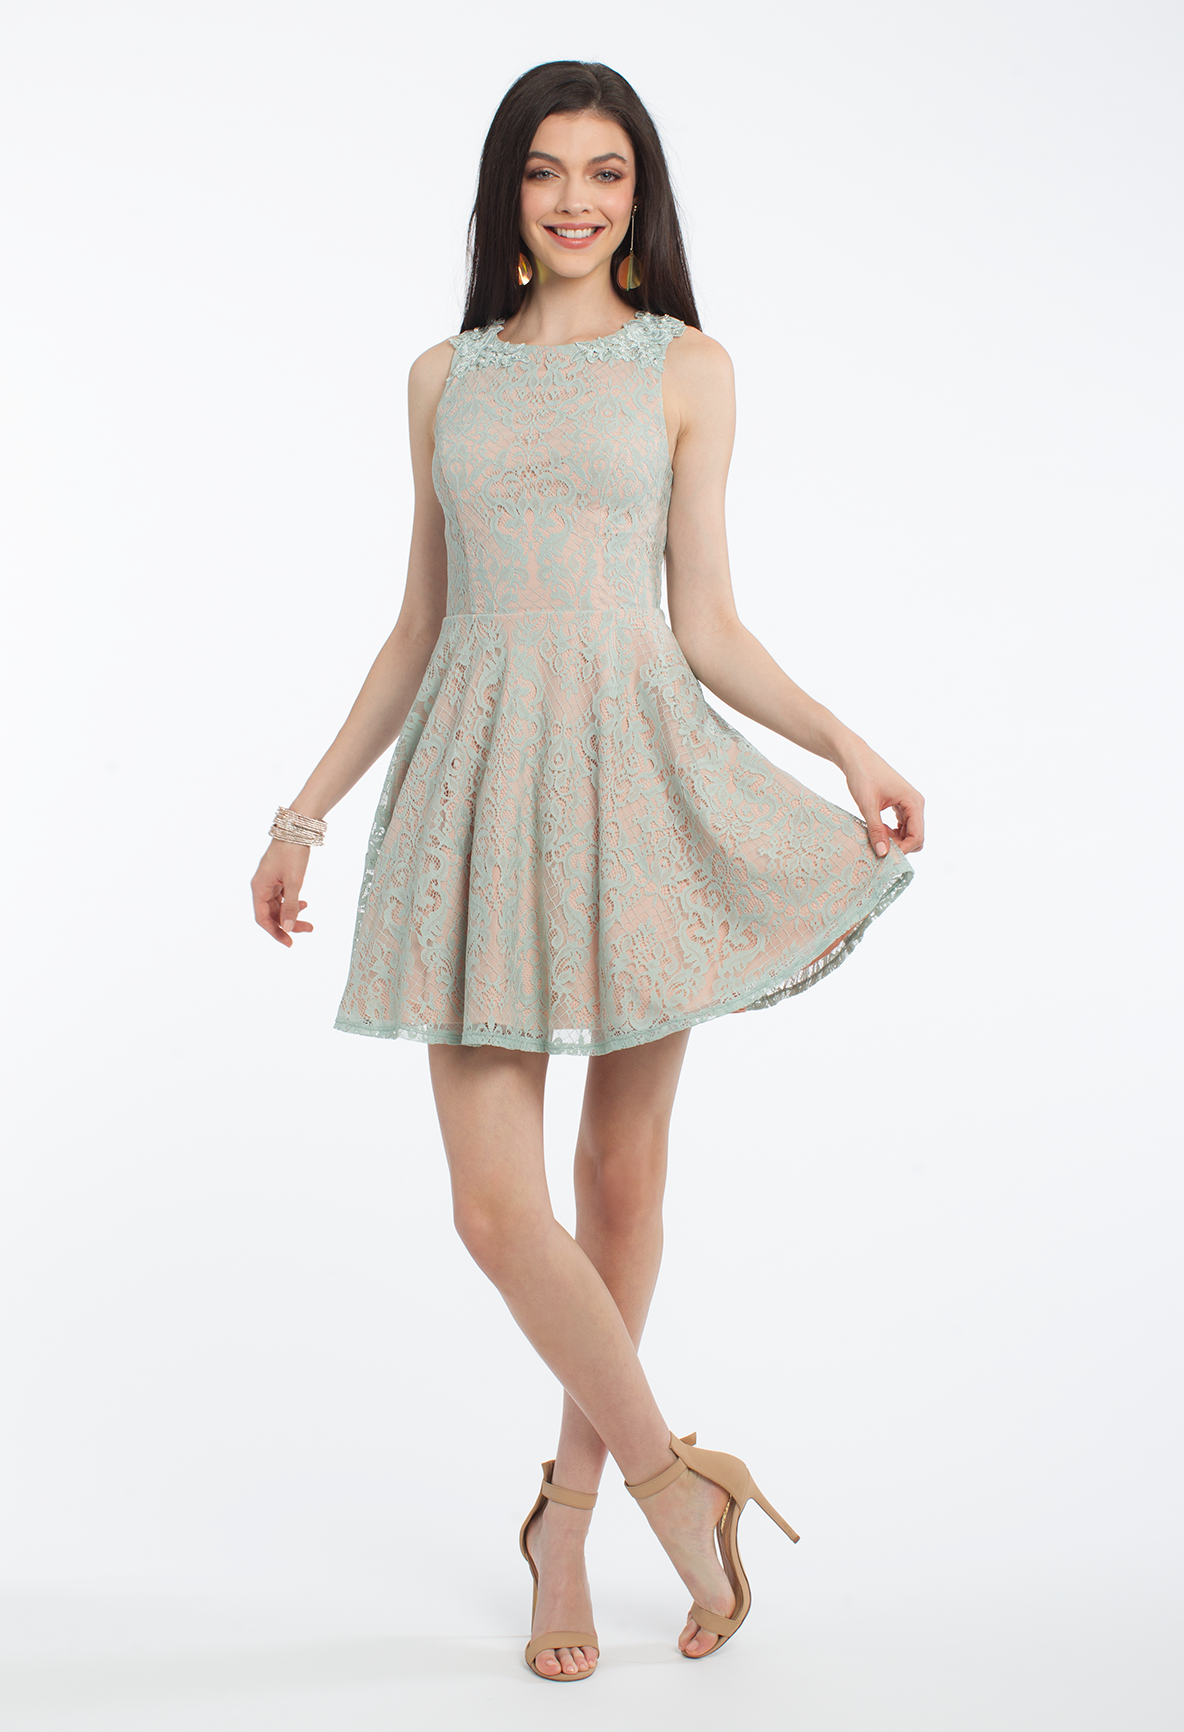 This party dress is elegance defined! With its two tone lace pattern ...